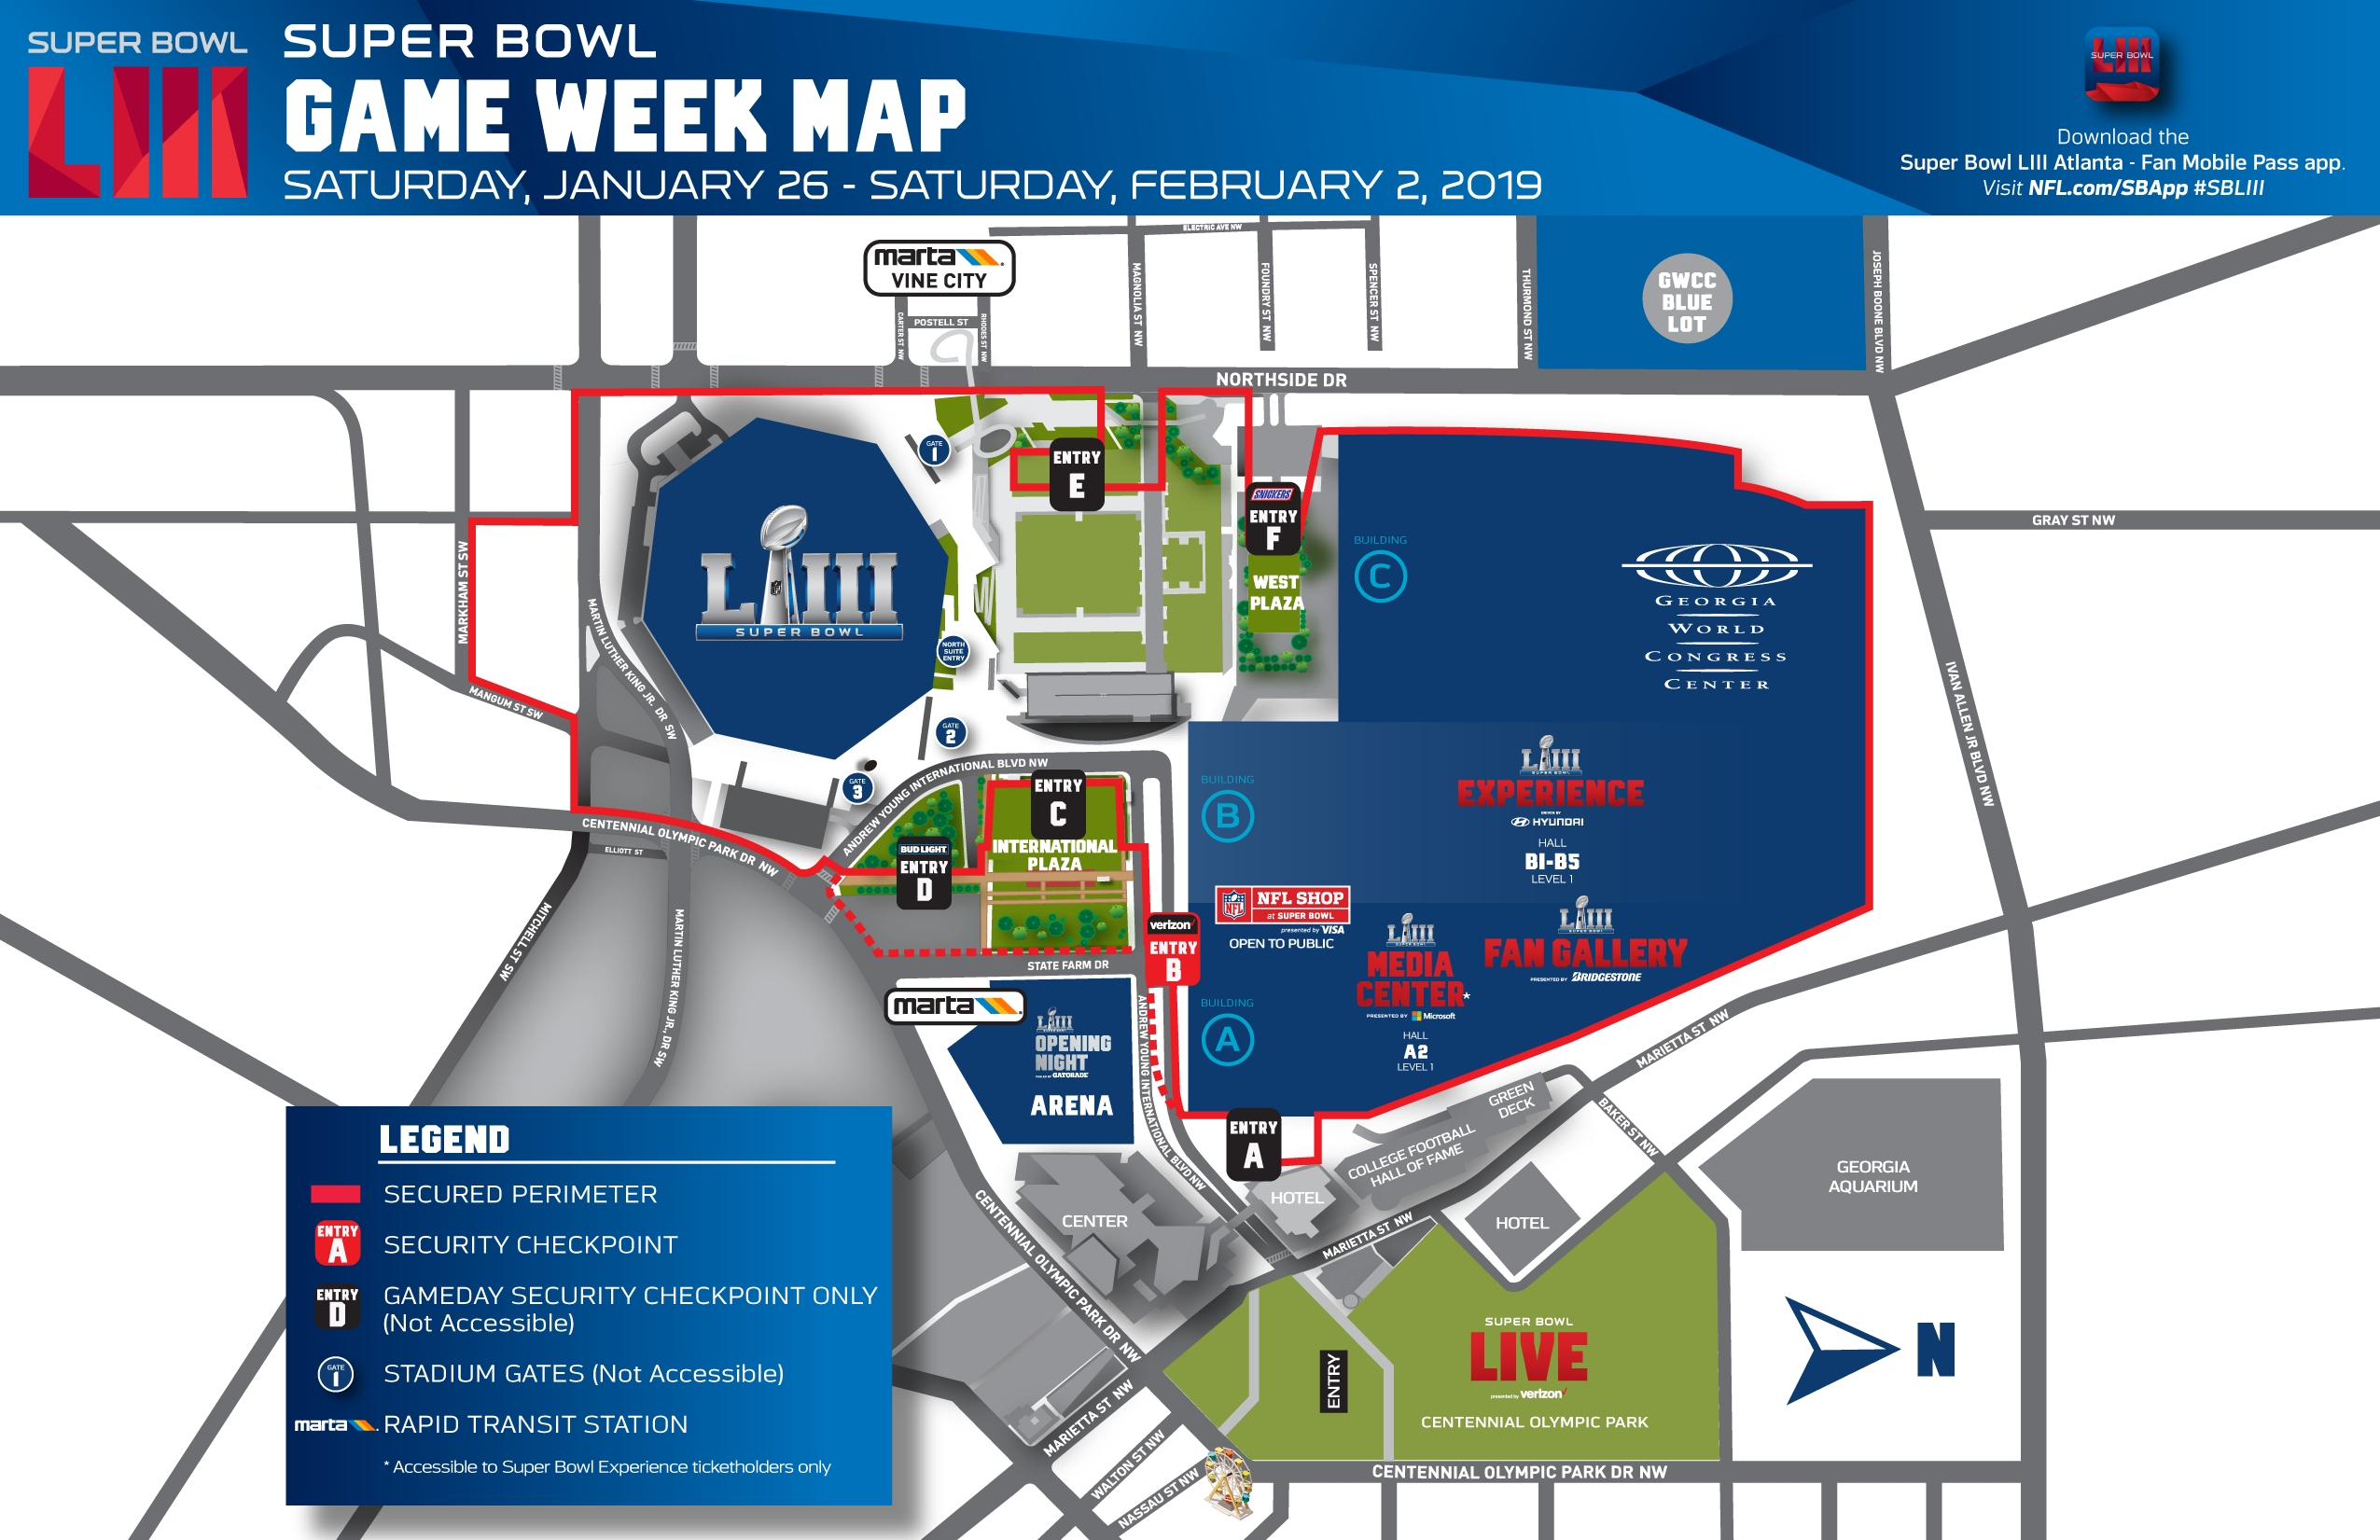 Super Bowl Experience | Nfl | Nfl with Super Bowl Map 2019